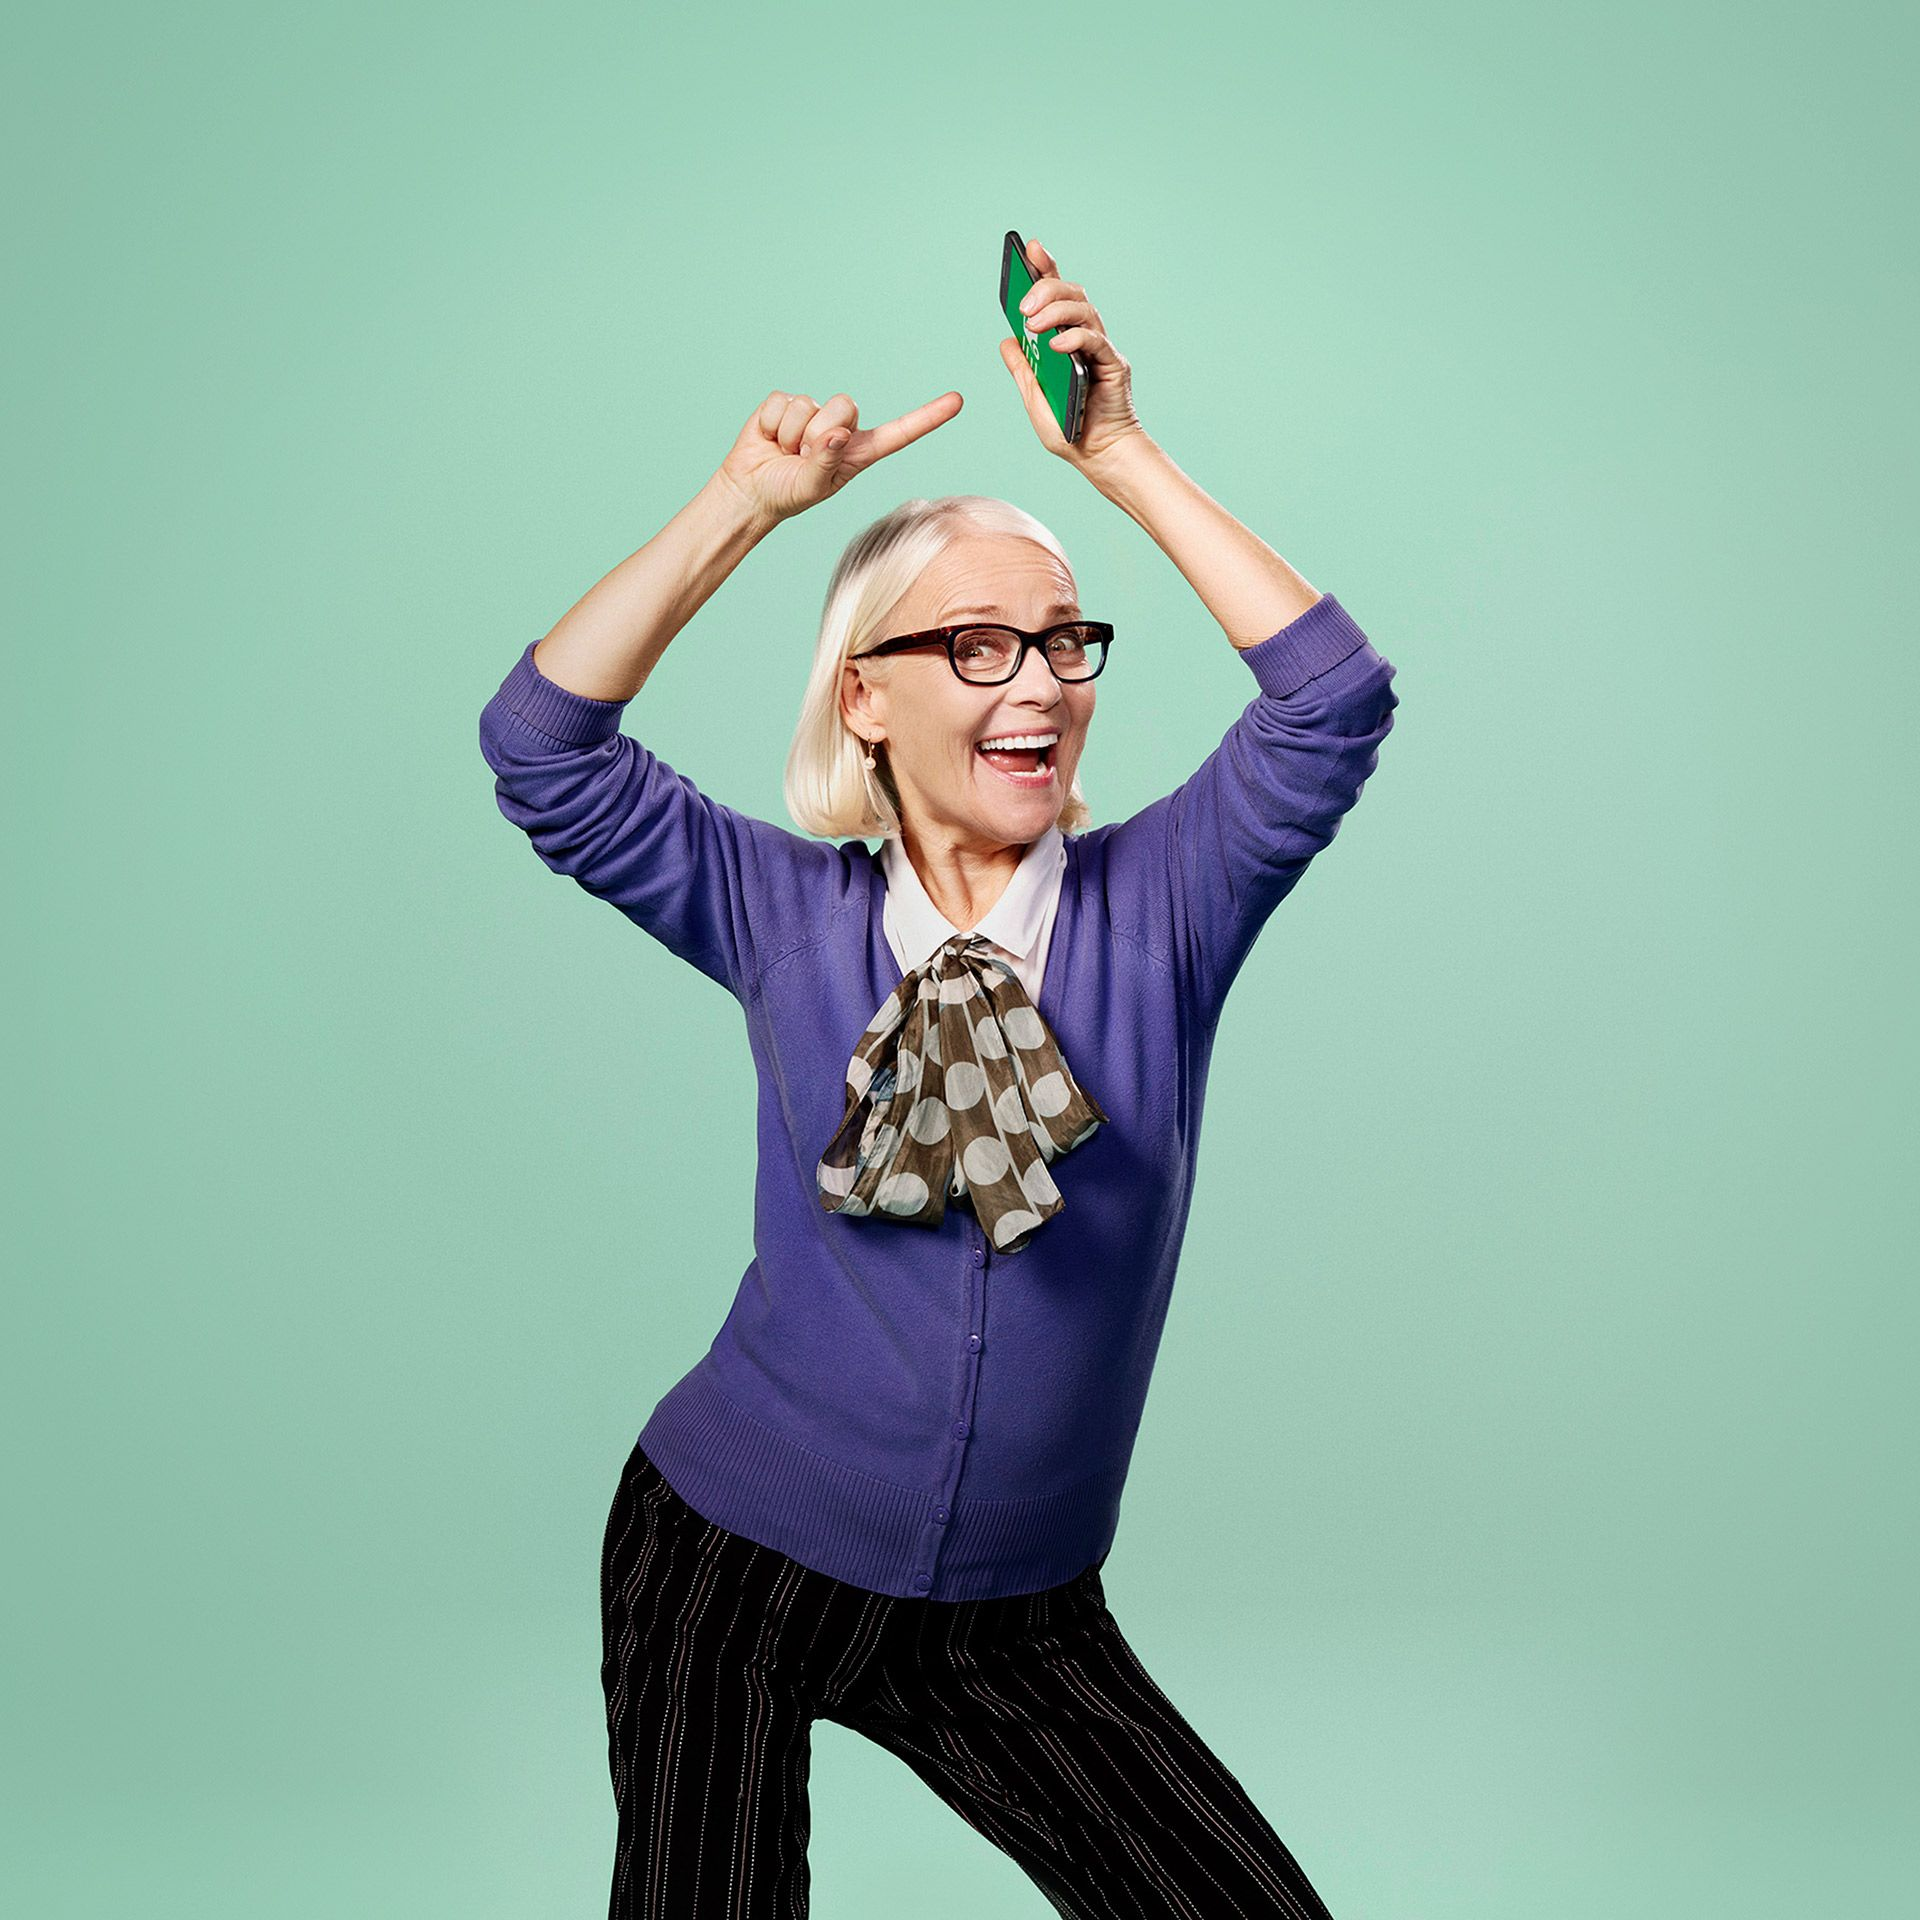 old lady in purple cardigan happy dancing pointing at phone over her head by Jocelyn Michel for Desjardins Assurance with Lg2